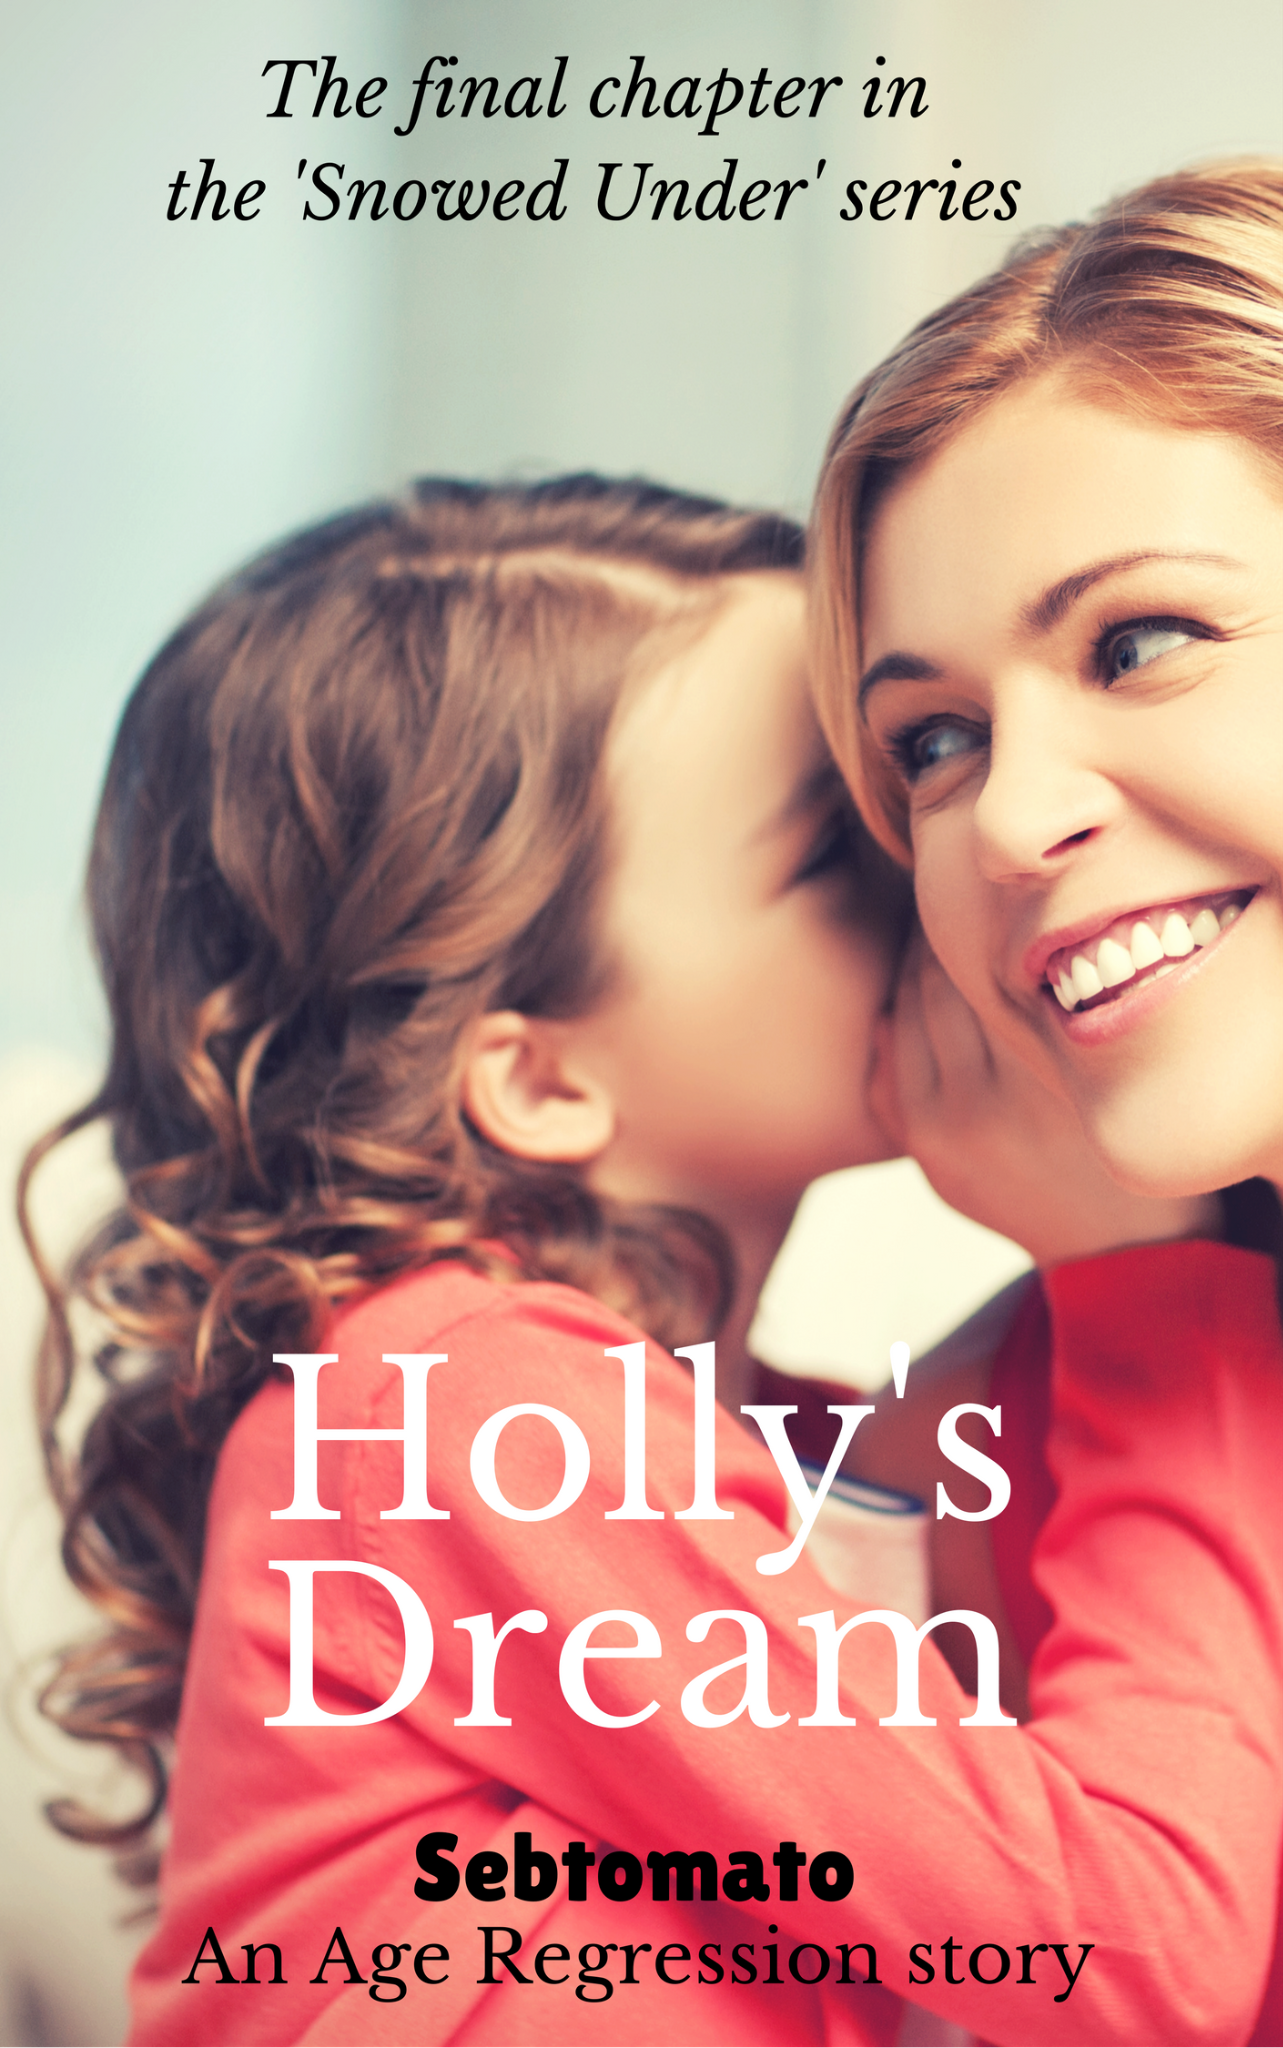 Holly's Dream